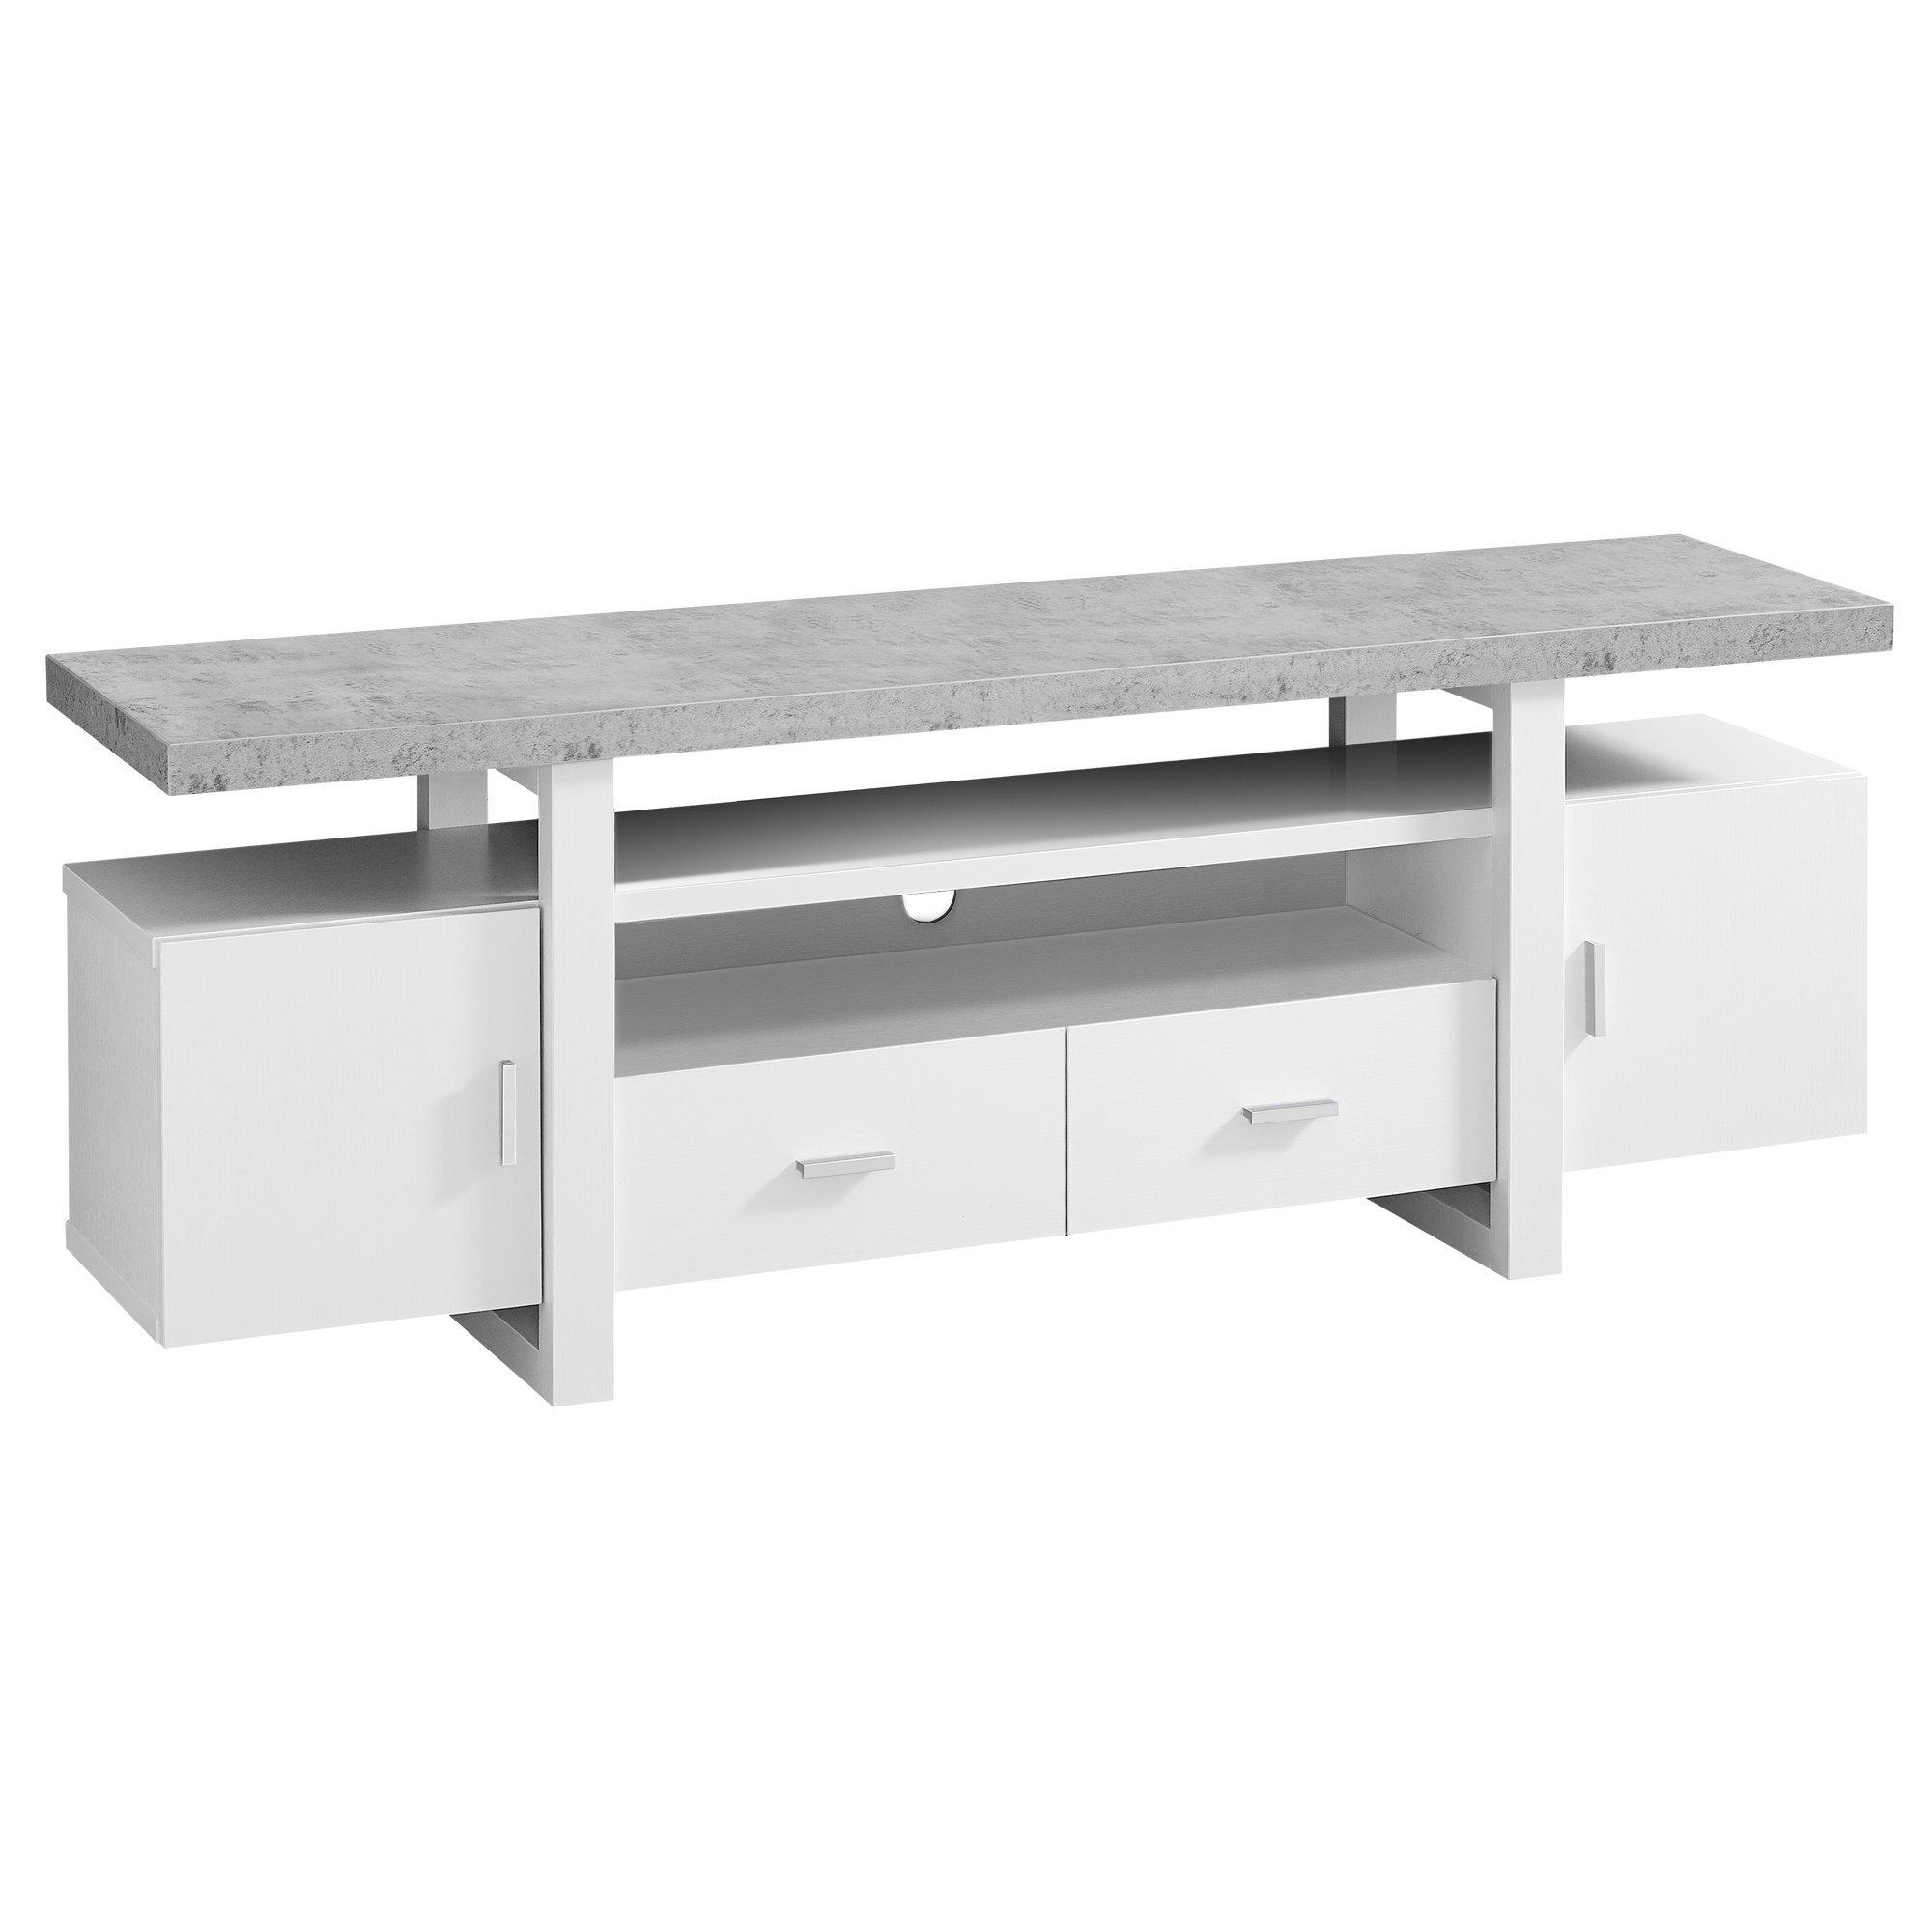 """Image of Tv Stand - 60""""L / White / Cement-Look Top"""